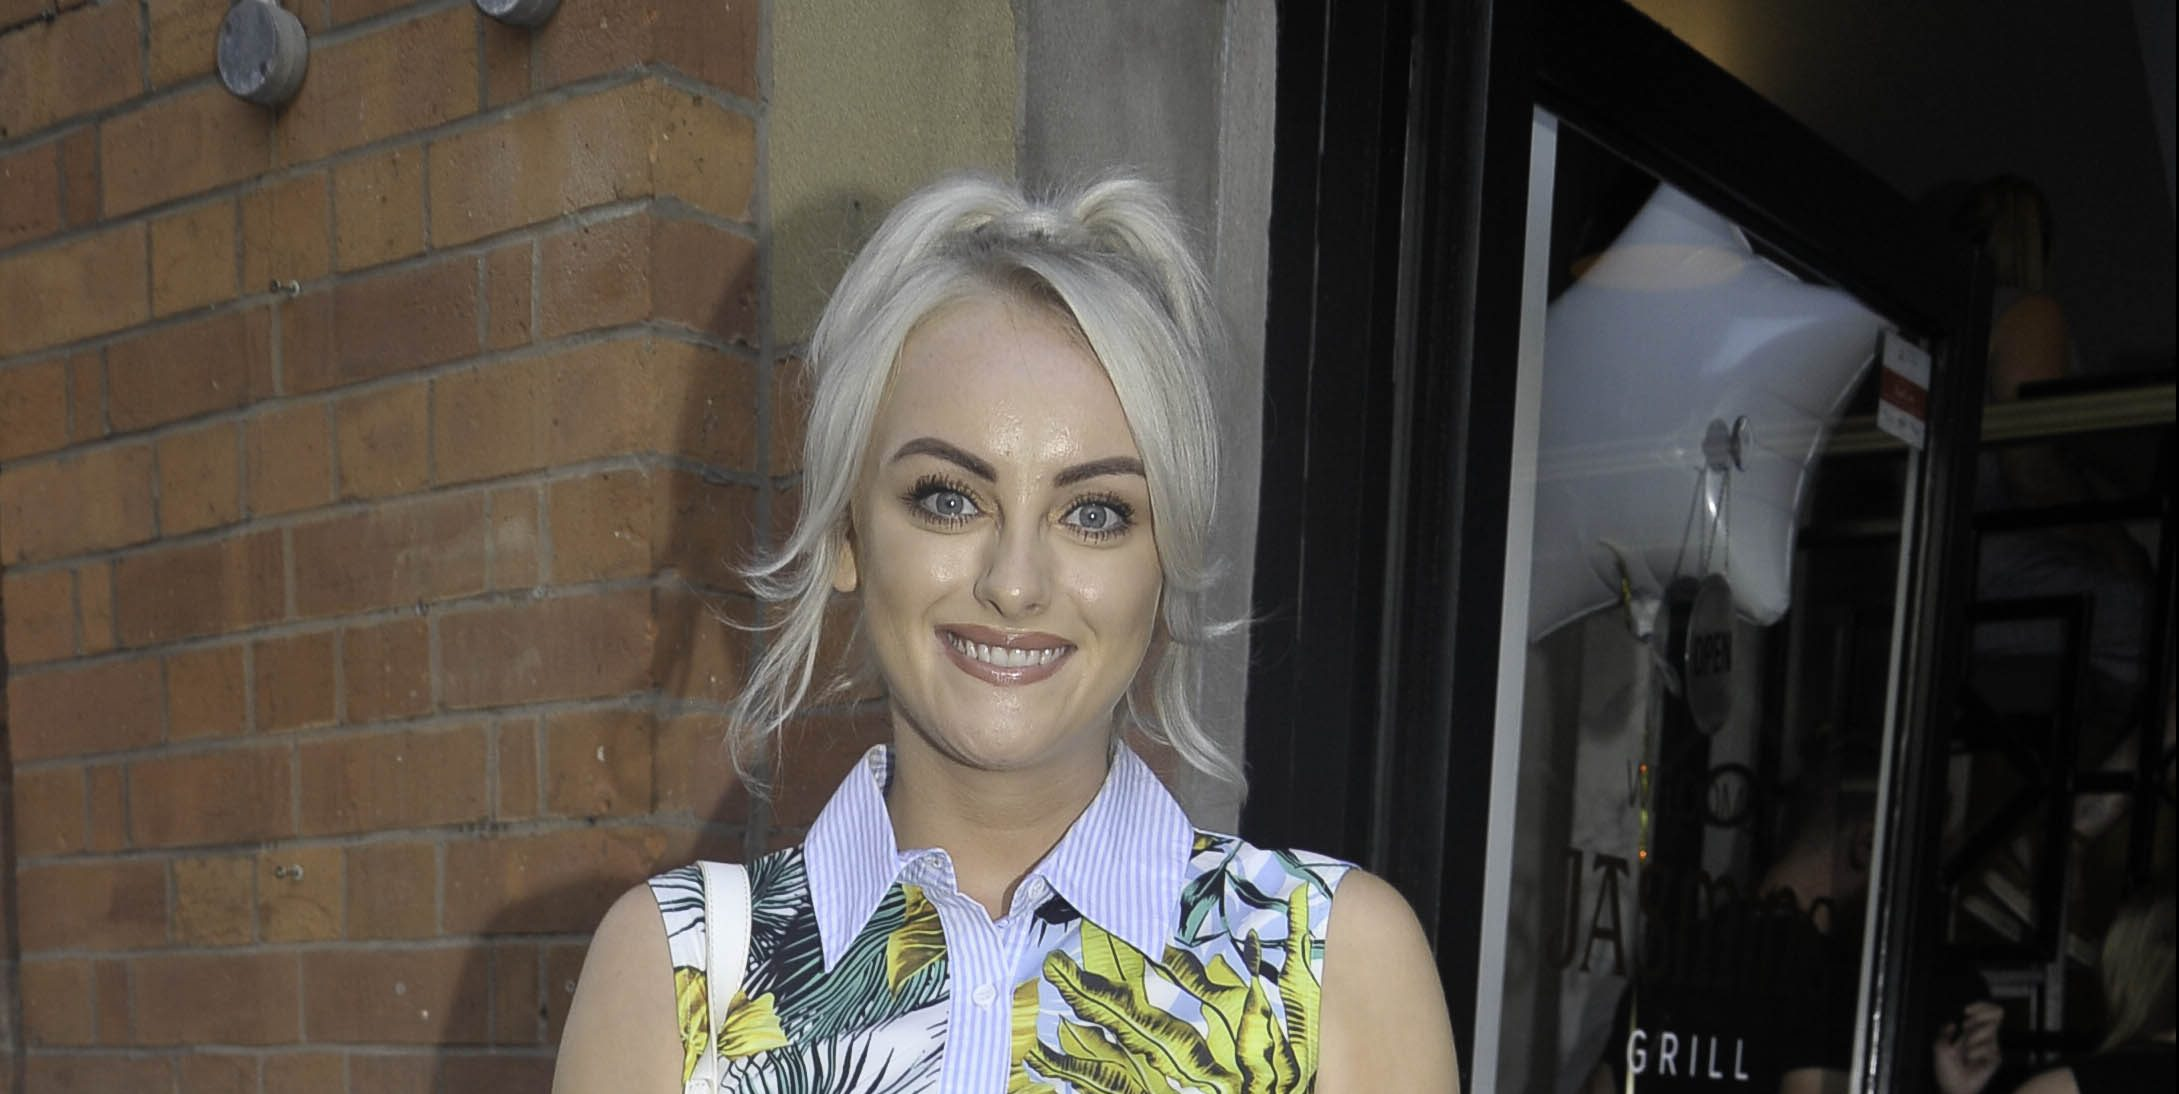 Coronation Street's Katie McGlynn wears 'peachy wig' as she parties with Alexandra Mardell at Leeds festival